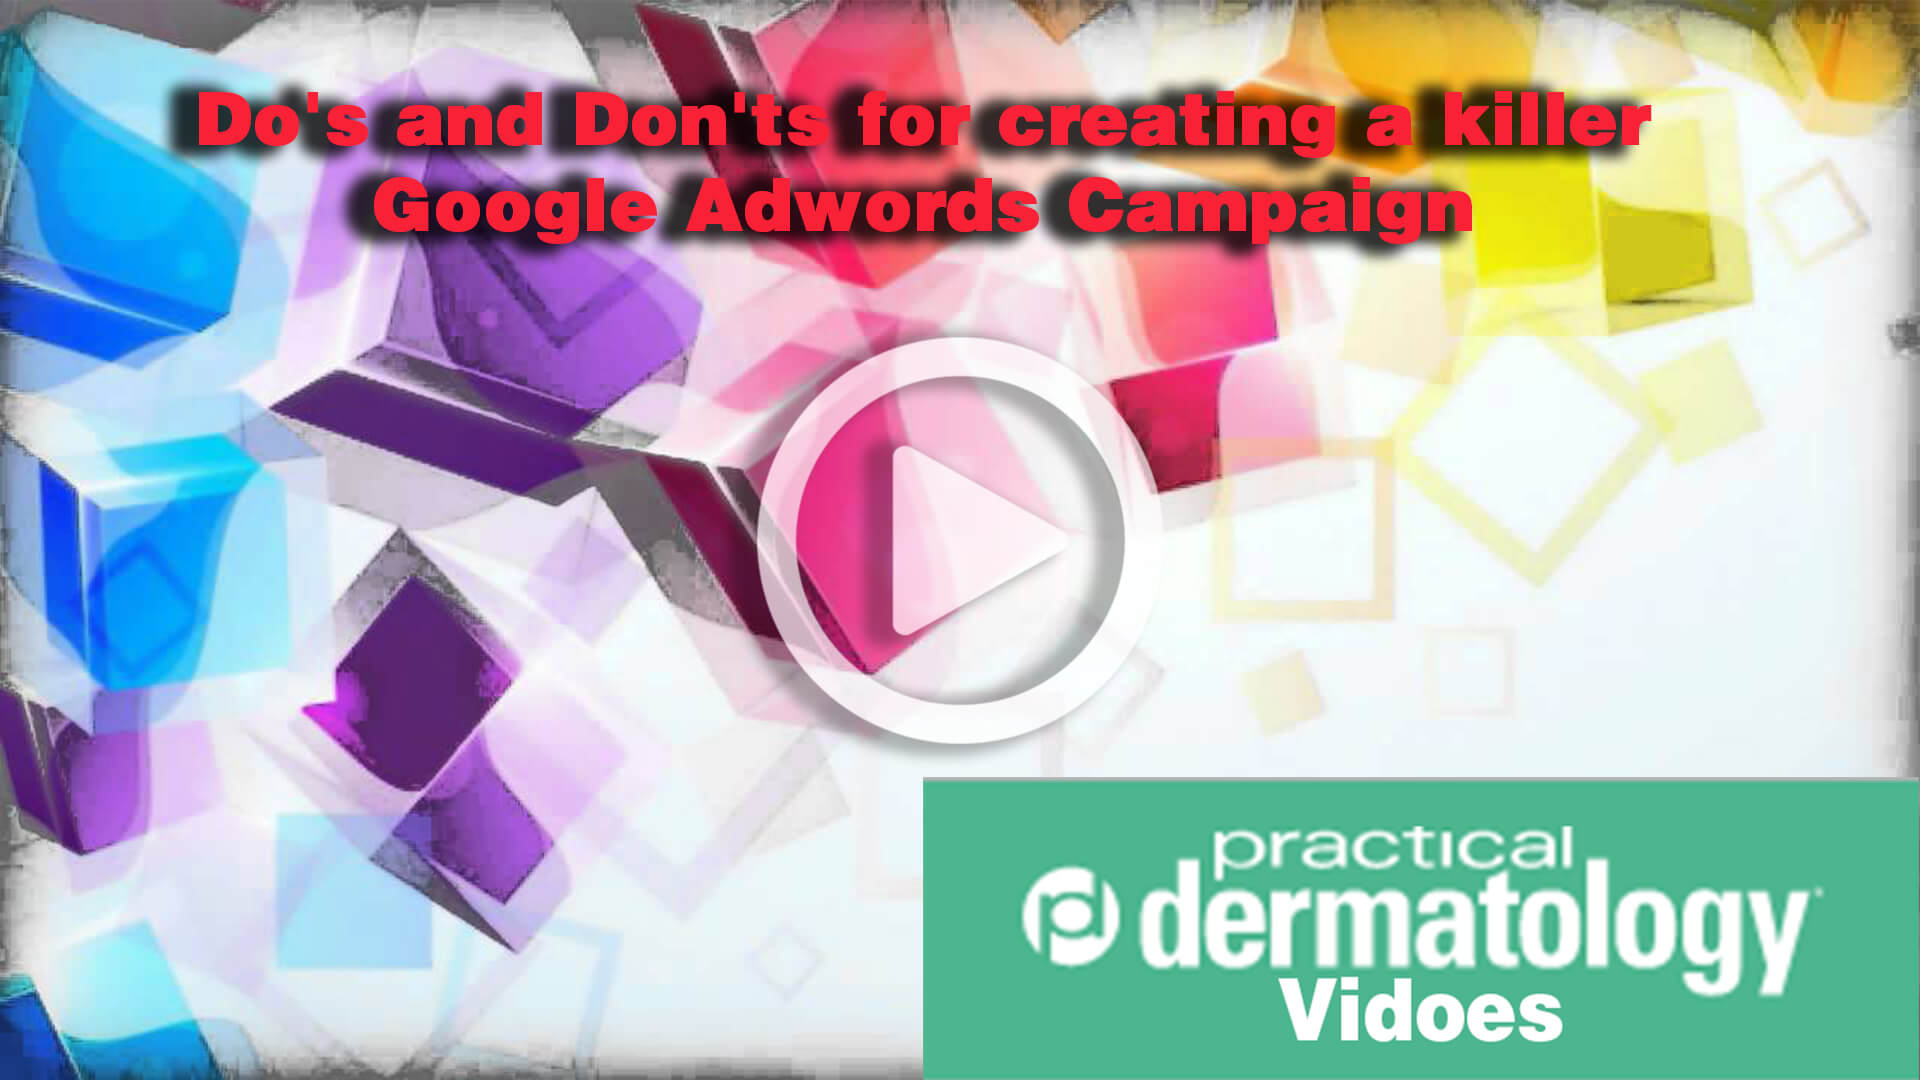 Do's and Don'ts for creating a killer Google Adwords Campaign